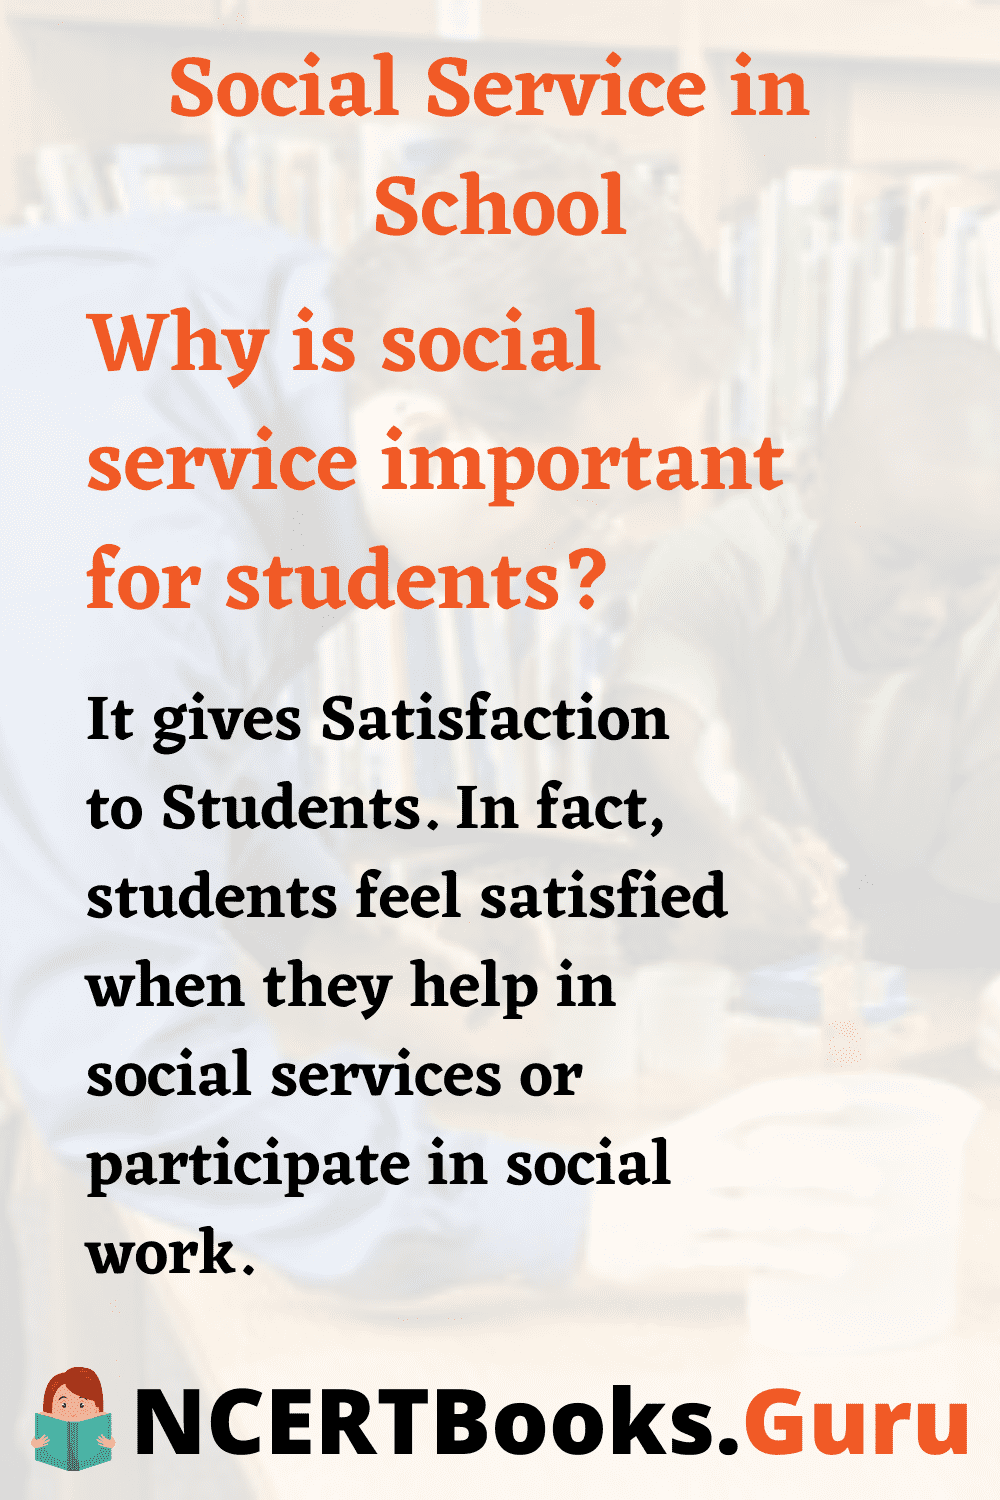 Why is Social Service Important for Students